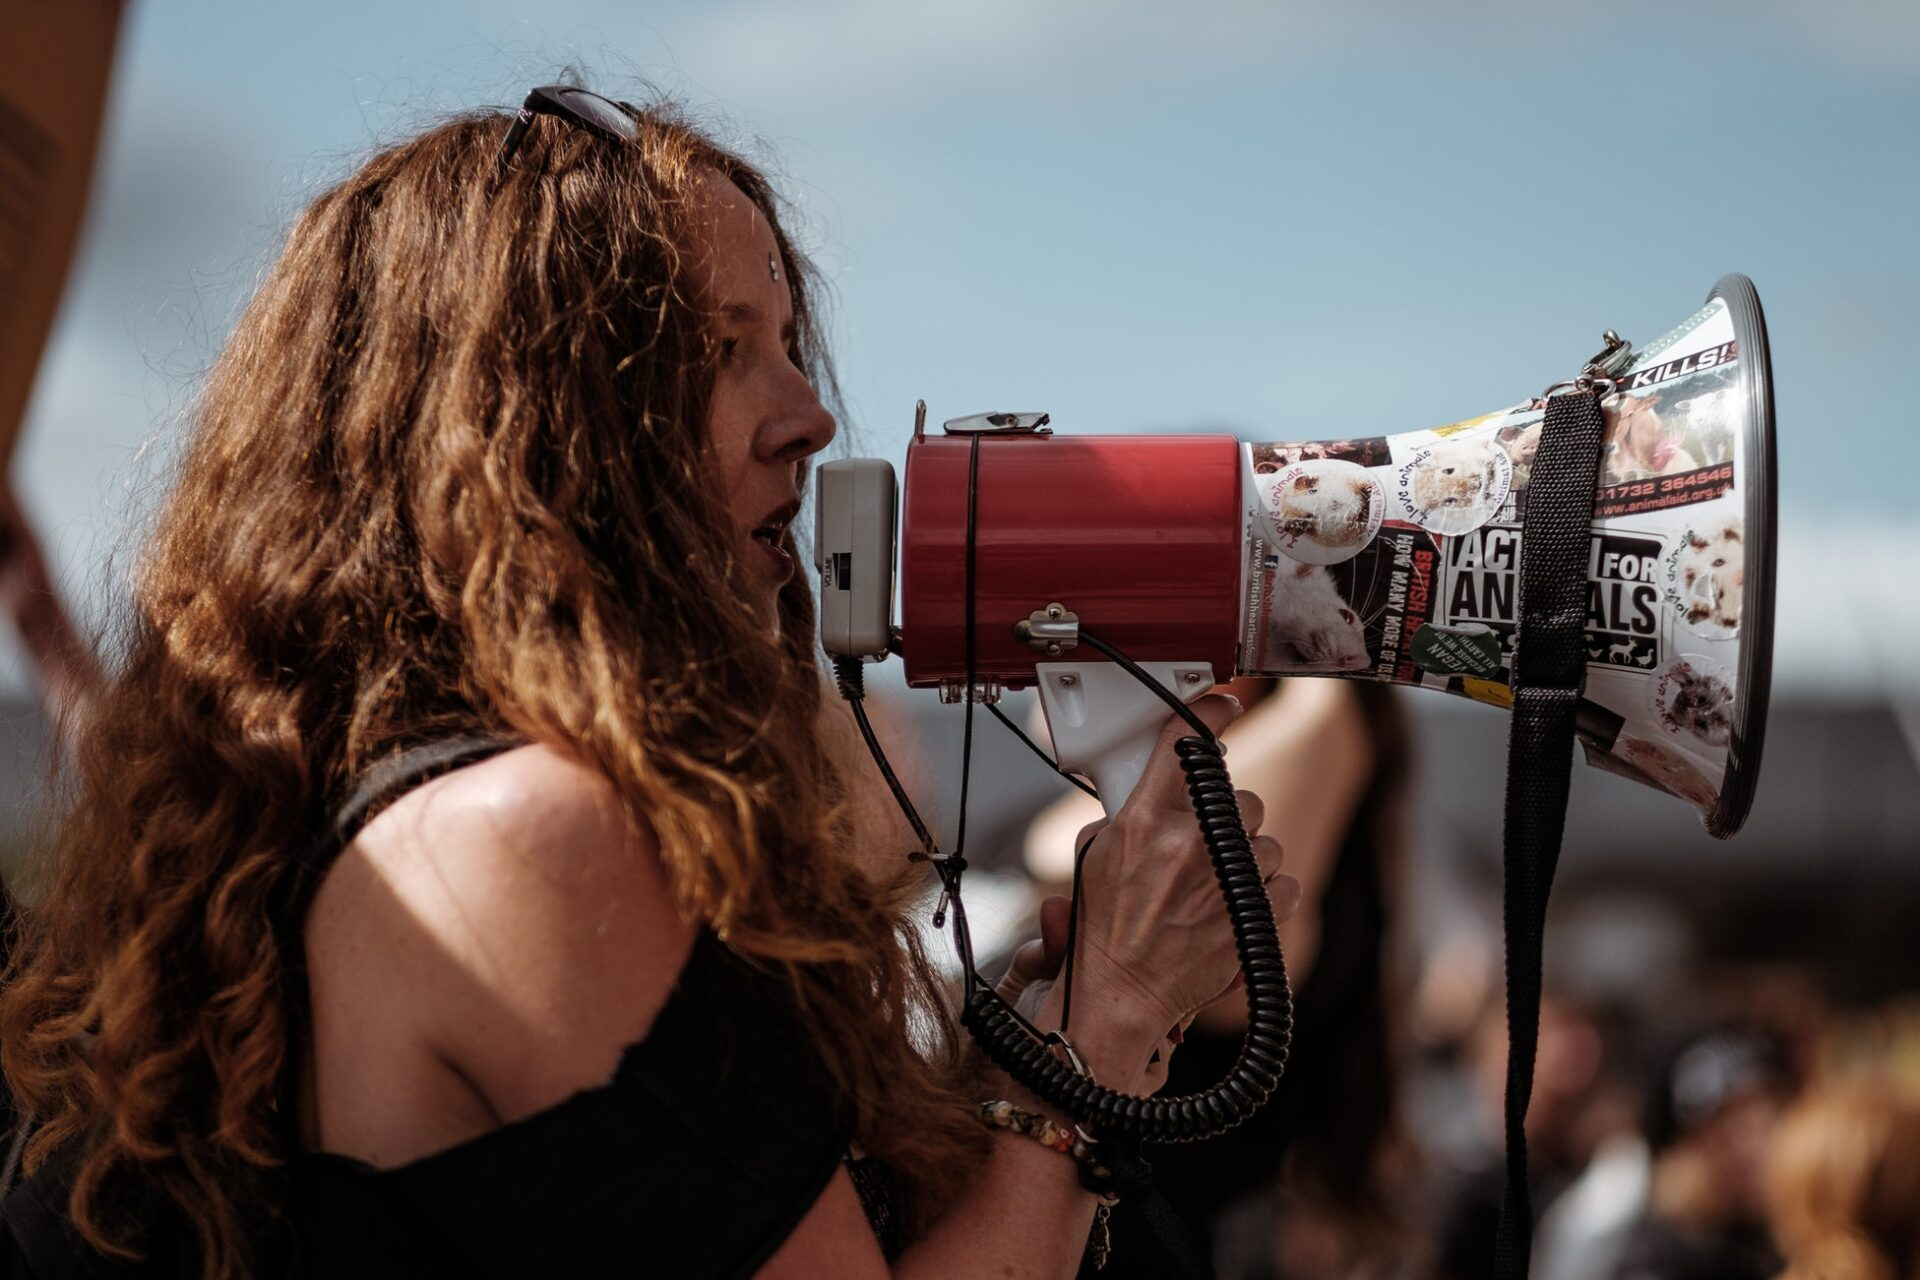 should hate speech be regulated on campus